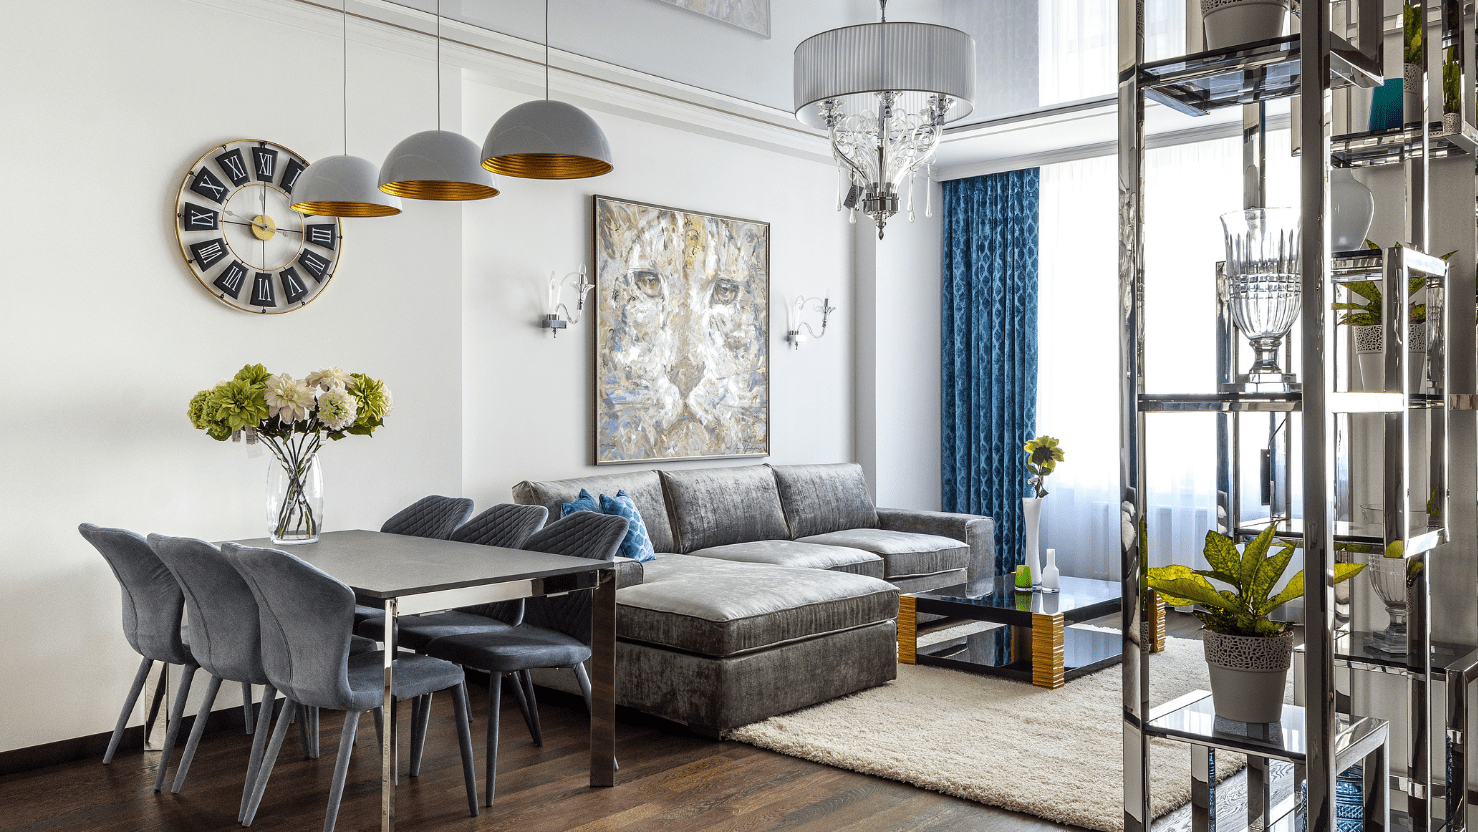 Decorating the Interior of your Home